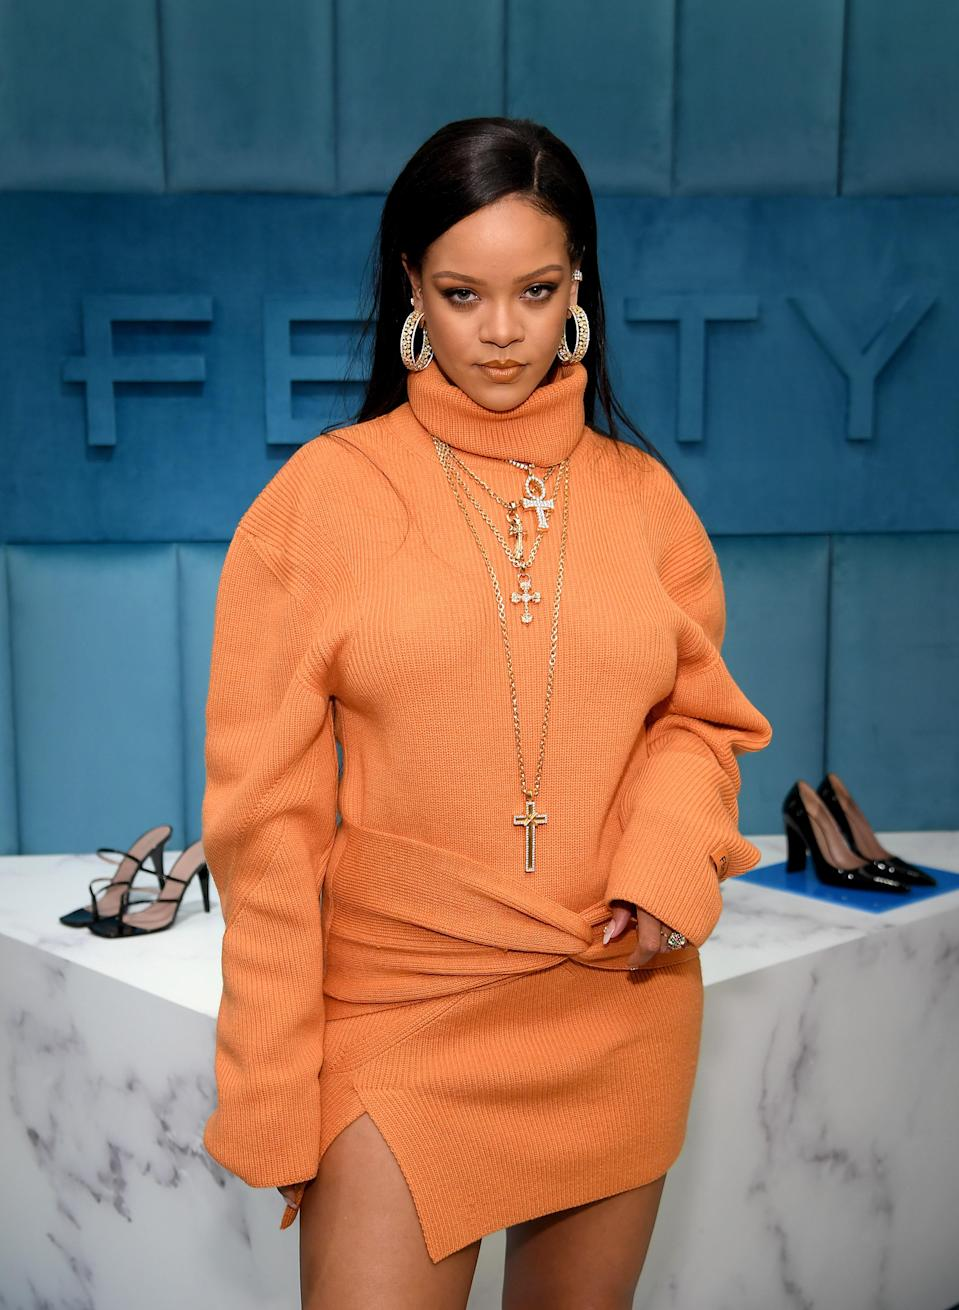 """Before she was a chart-topping singer or leading a billion-dollar business, Rihanna was born Robyn Rihanna Fenty. (Yep, that's where the <a href=""""https://www.glamour.com/gallery/fenty-beauty-reviews?mbid=synd_yahoo_rss"""" rel=""""nofollow noopener"""" target=""""_blank"""" data-ylk=""""slk:beauty brand"""" class=""""link rapid-noclick-resp"""">beauty brand</a>'s name comes from!) Her closest friends and family members still call her Robyn. """"I get kind of numb to hearing Rihanna, Rihanna, Rihanna,"""" she once <a href=""""https://www.rollingstone.com/music/music-lists/excerpts-from-rihannas-rolling-stone-cover-story-10381/sweet-basil-102736/"""" rel=""""nofollow noopener"""" target=""""_blank"""" data-ylk=""""slk:told Rolling Stone"""" class=""""link rapid-noclick-resp"""">told <em>Rolling Stone</em></a>. """"When I hear Robyn, I pay attention."""""""